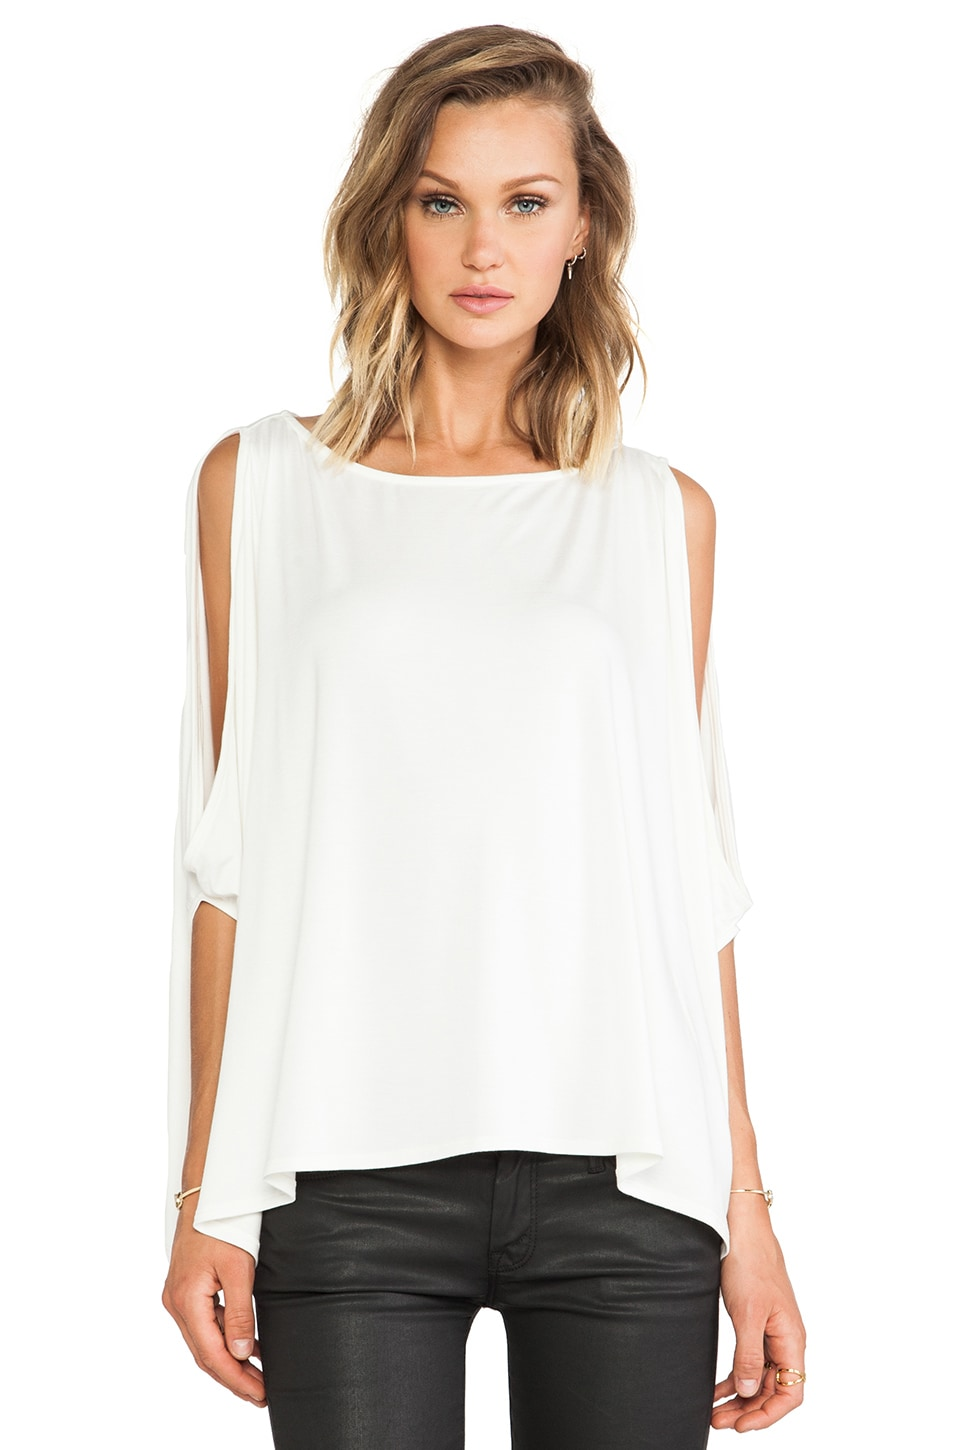 Rachel Pally Yalisa Crop Top in White